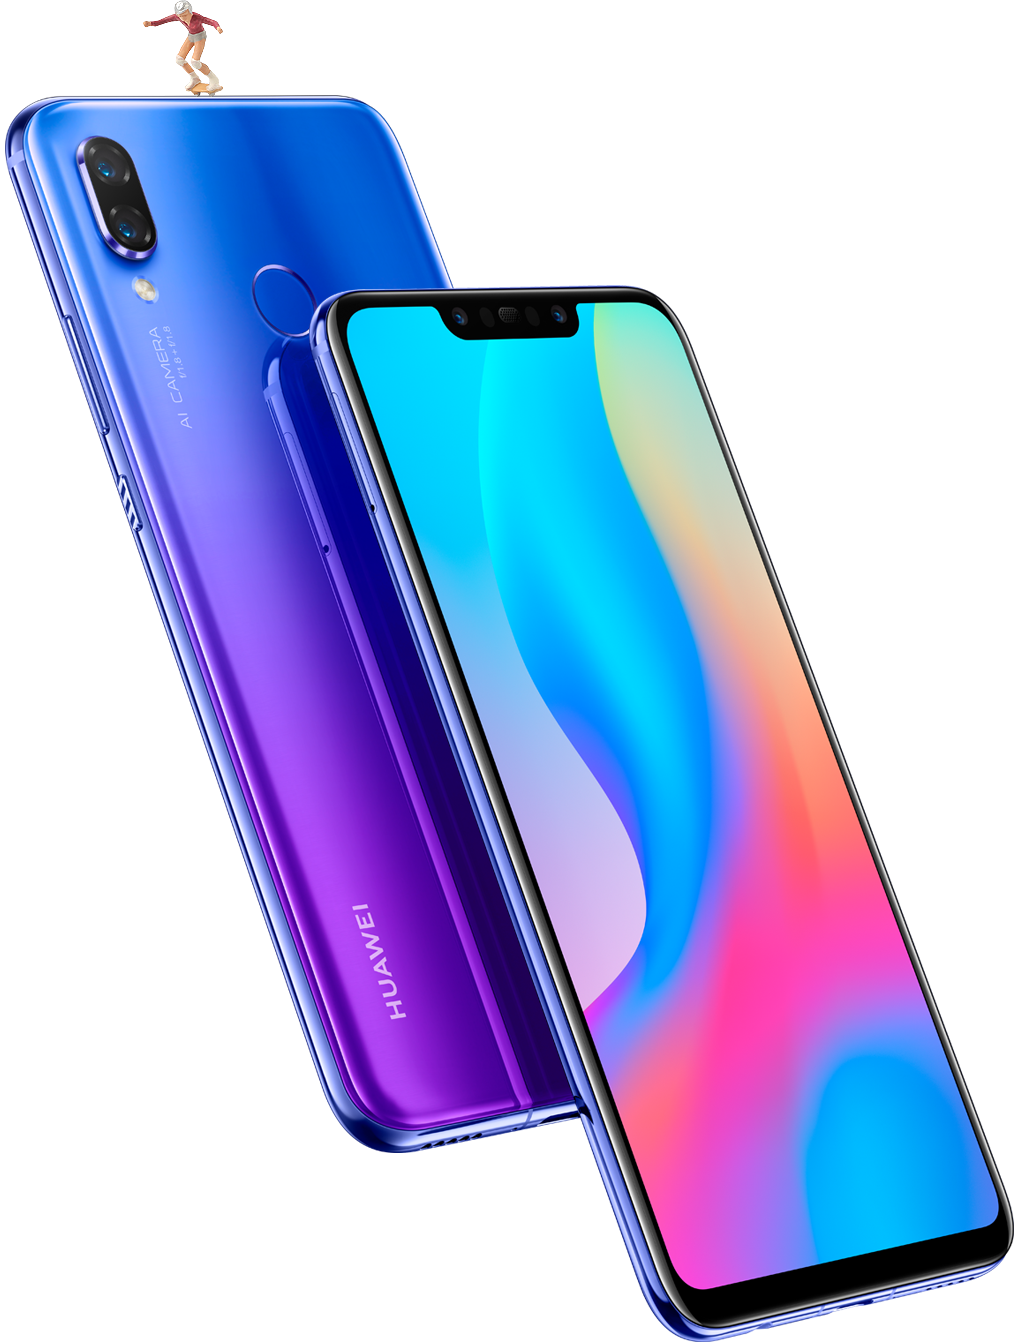 Huawei nova 3 front and back shot